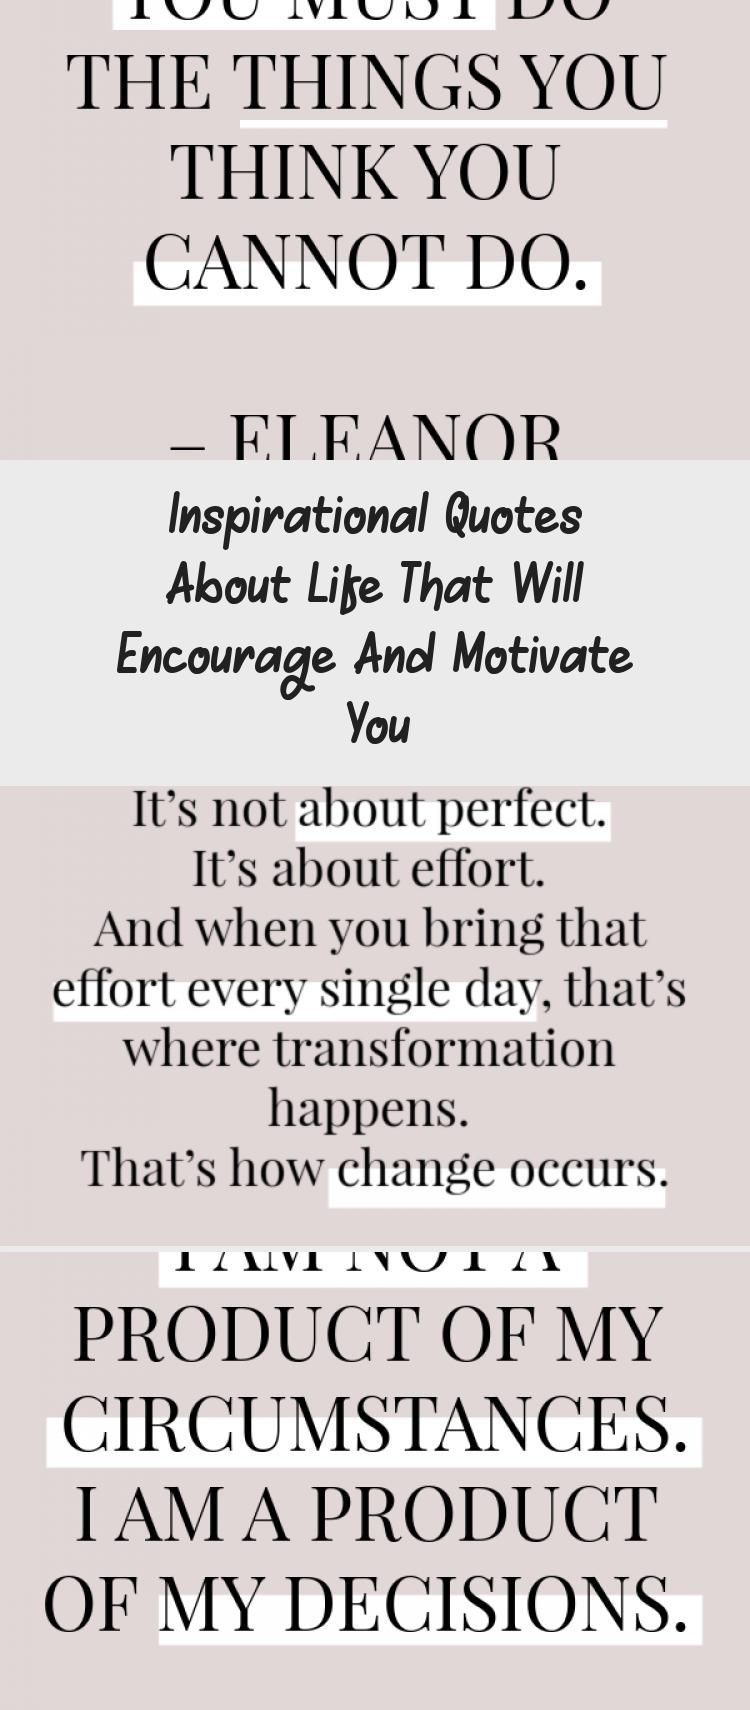 20 Inspirational quotes that will motivate and encourage you making this the perfect combo for starting a new week